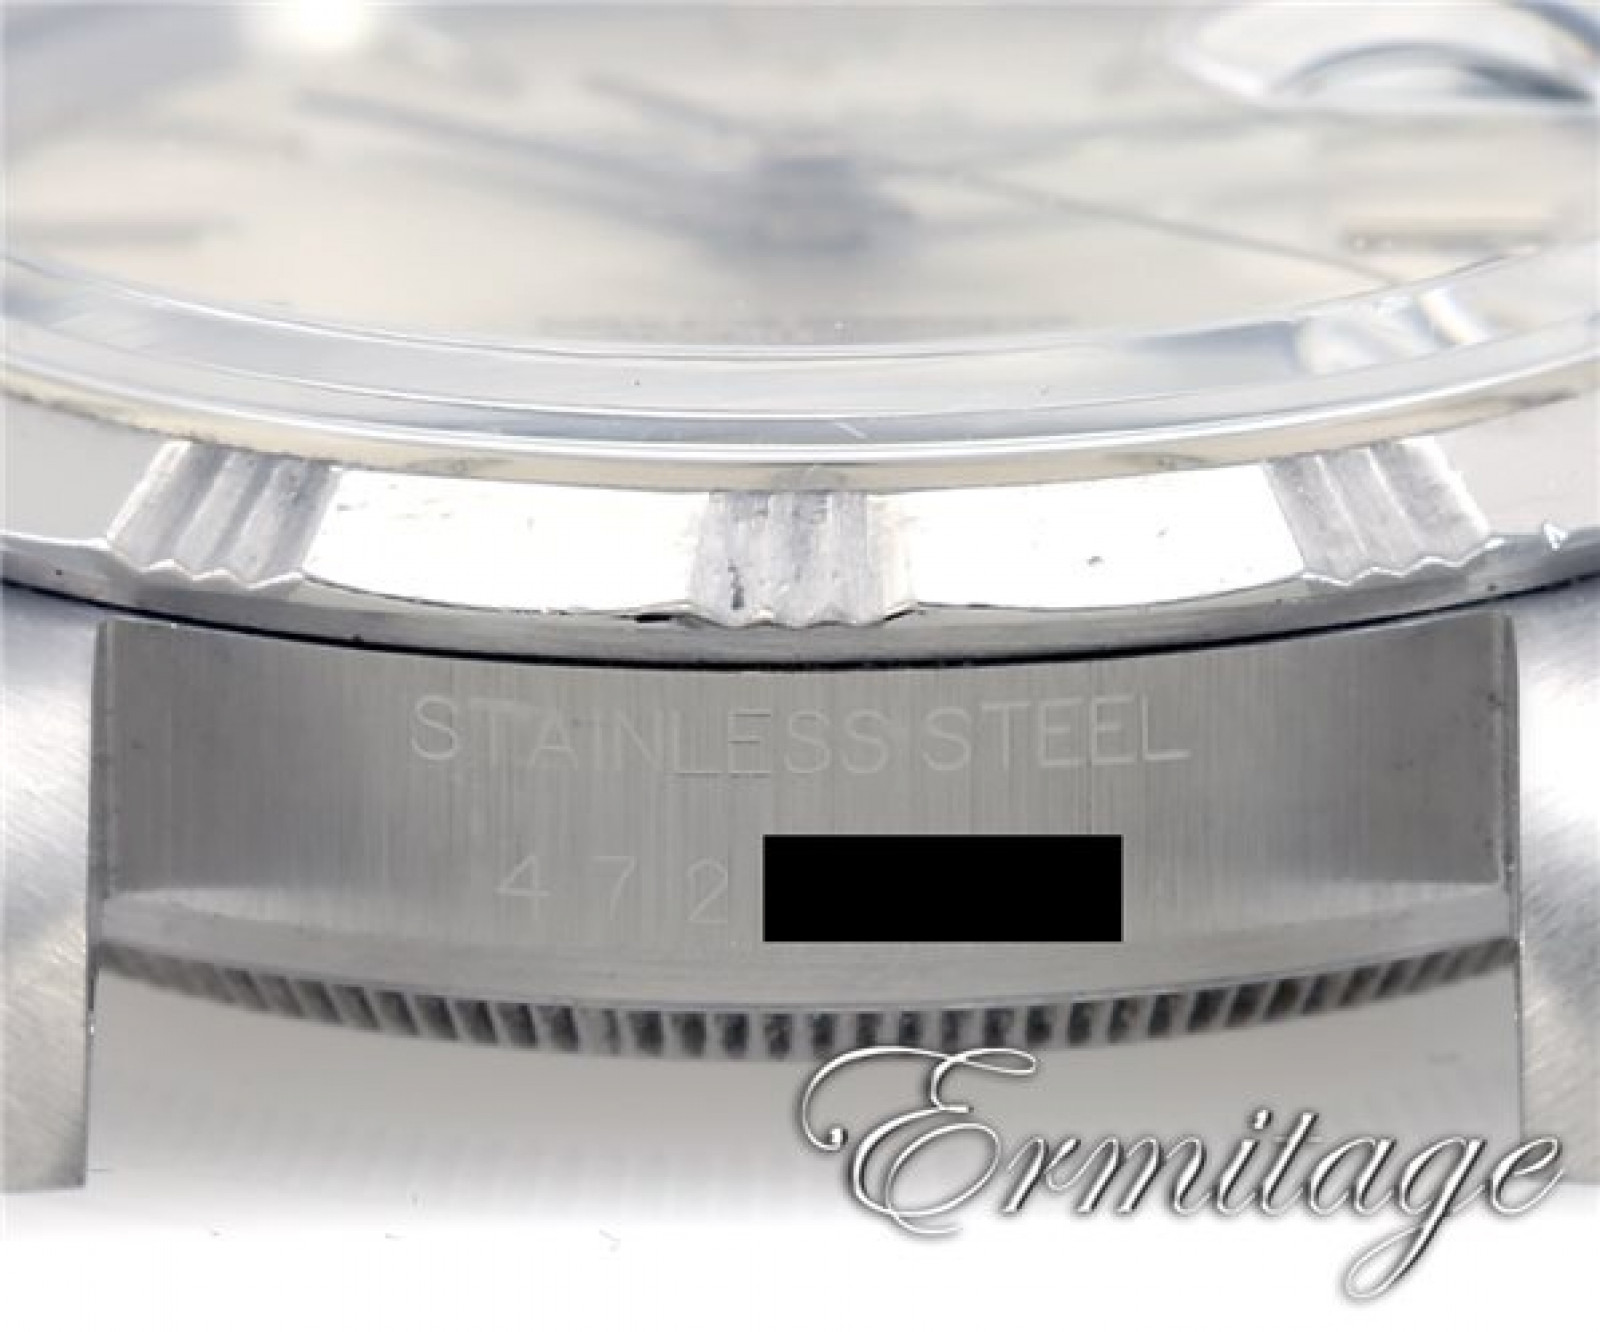 Rolex Oyster Perpetual Datejust 1600 Steel